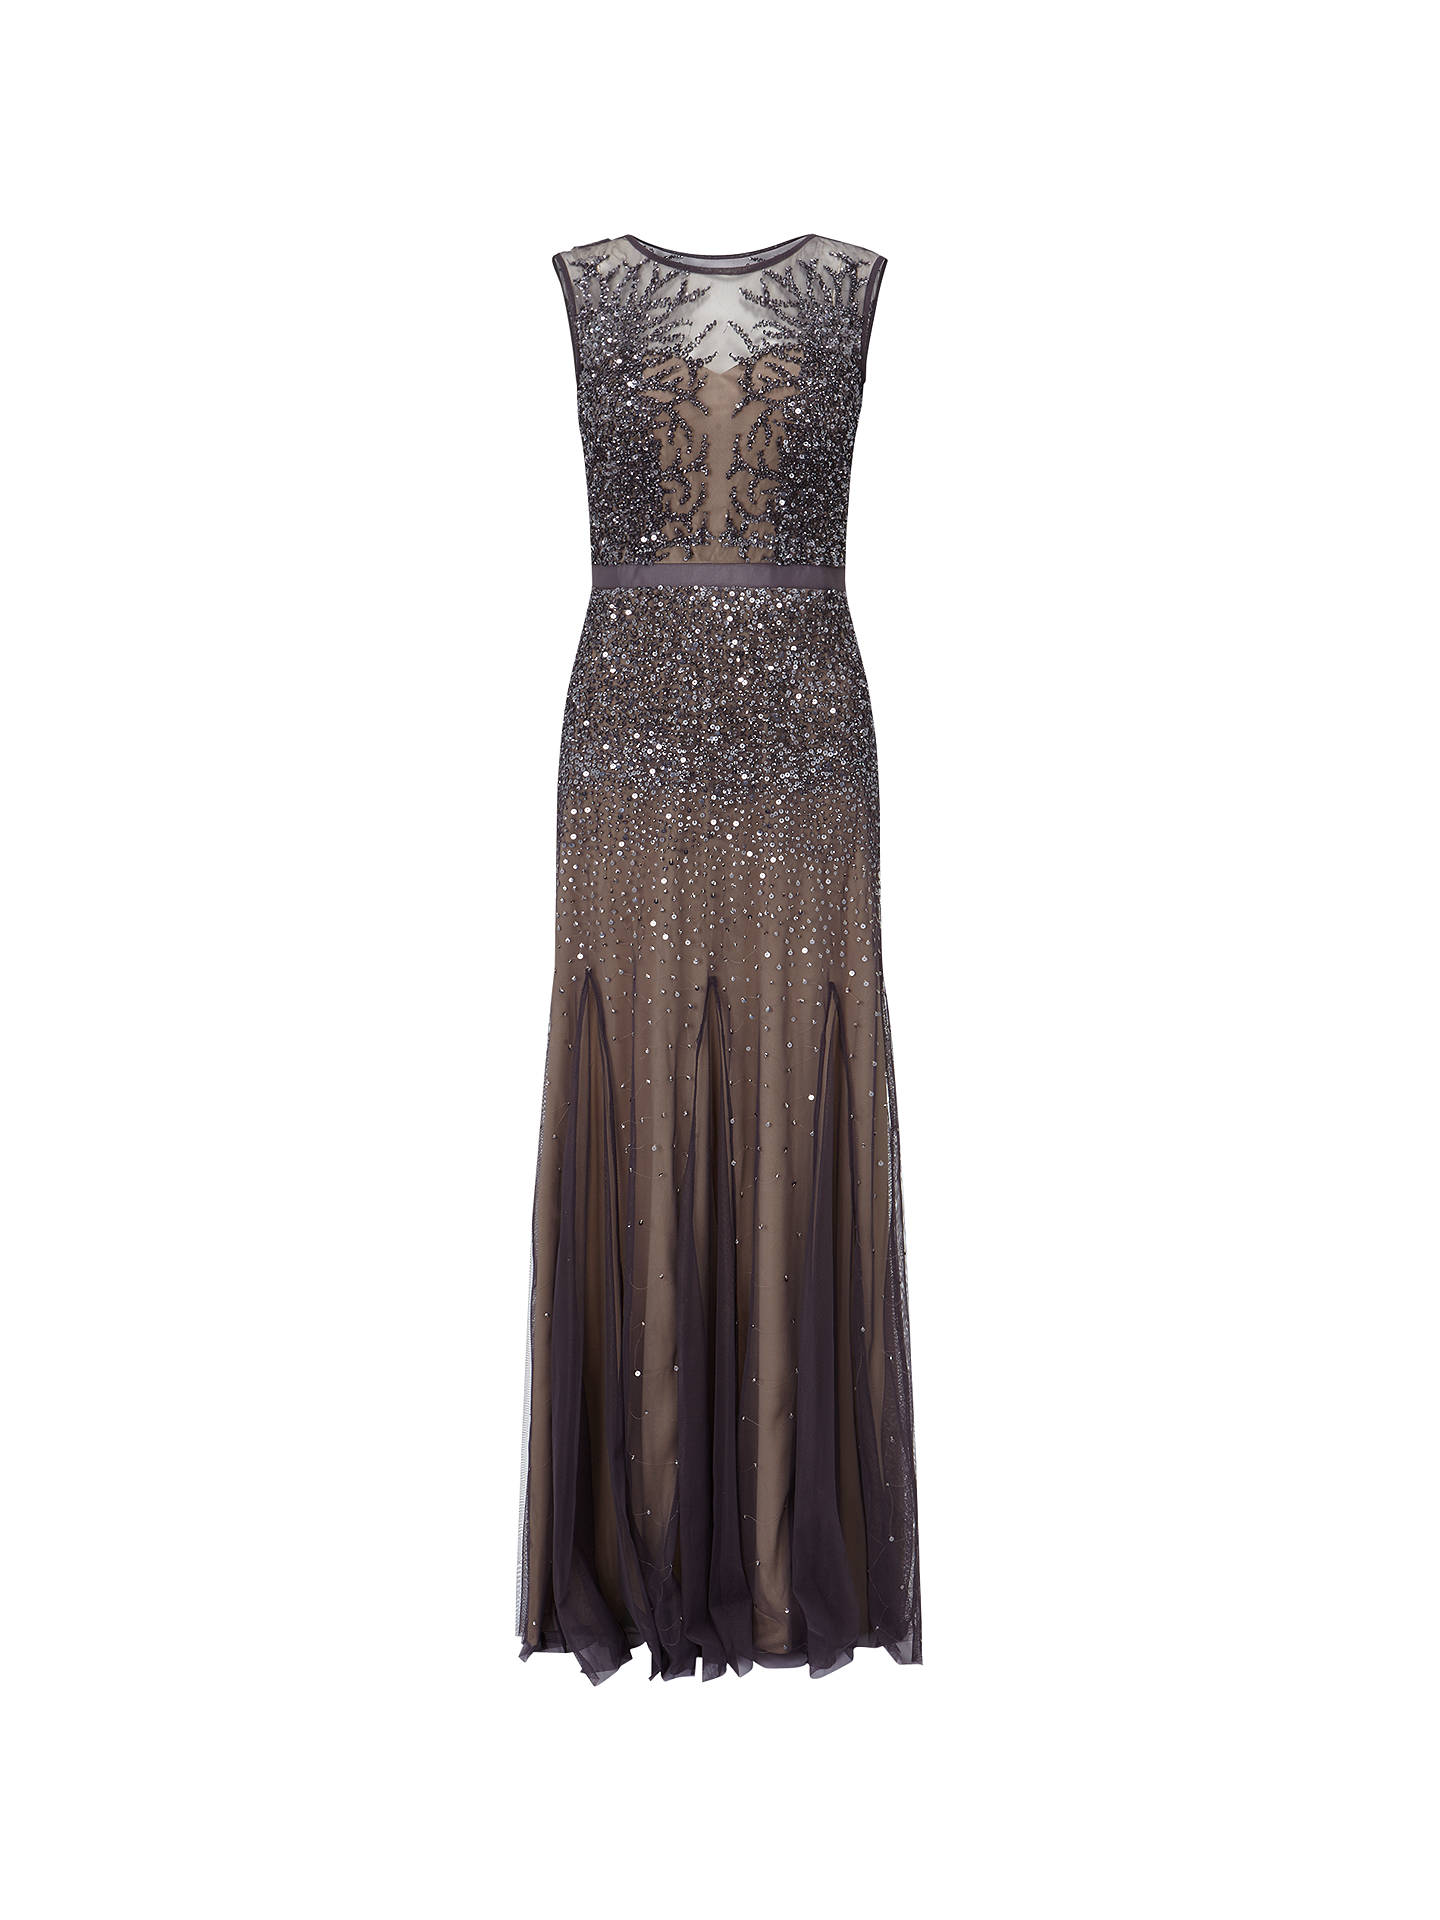 063d3aa4709 ... Buy Adrianna Papell Petite Long Beaded Gown